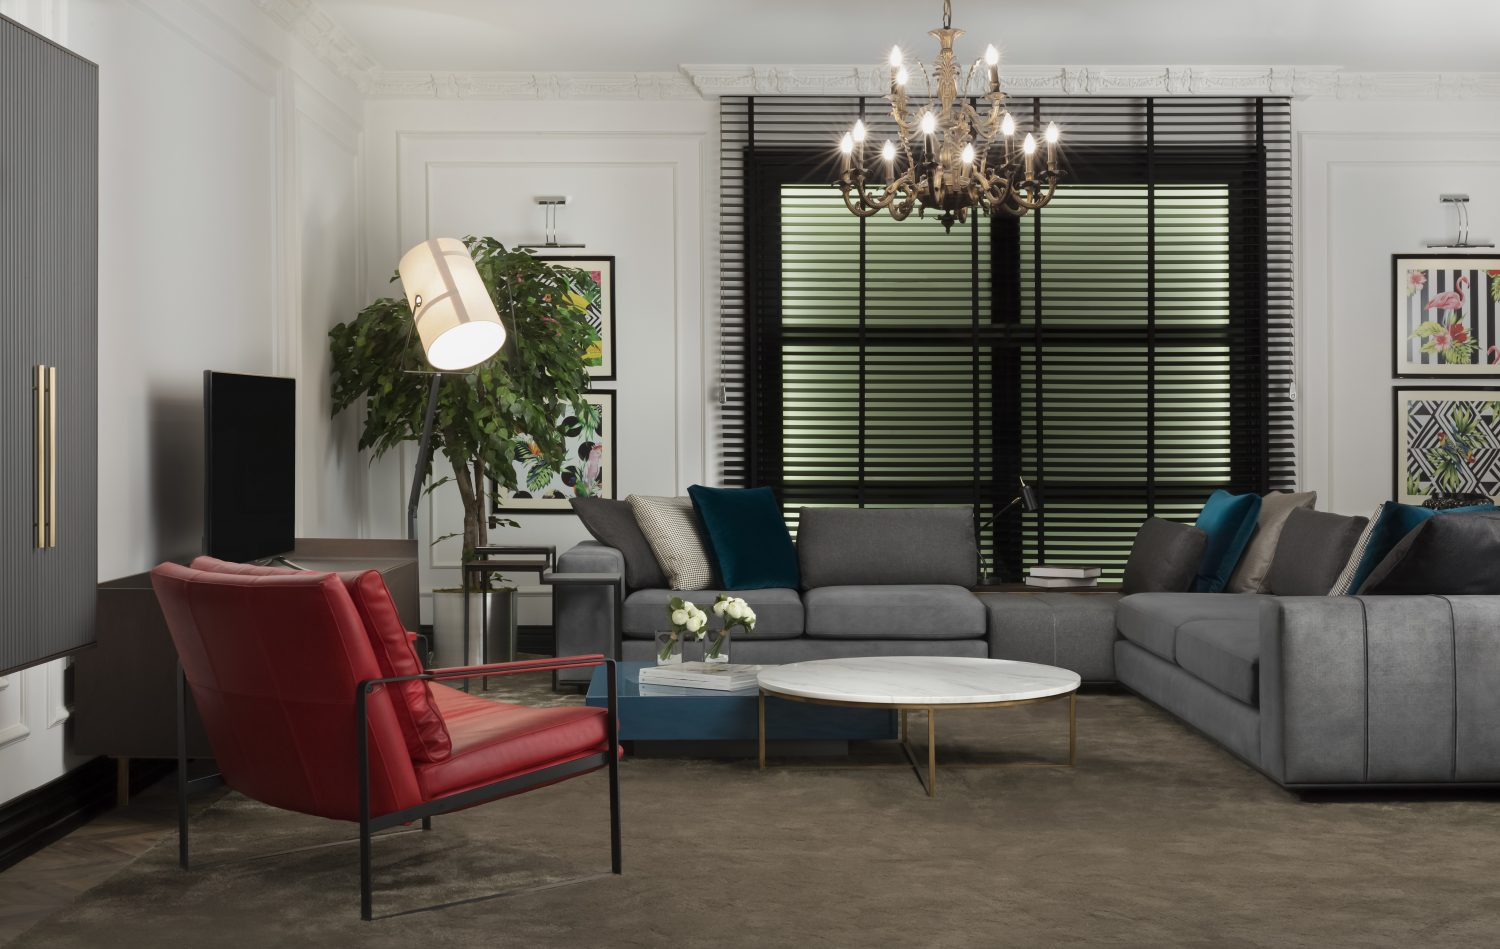 Corner modular sofa with round coffee table and leather lounge chair